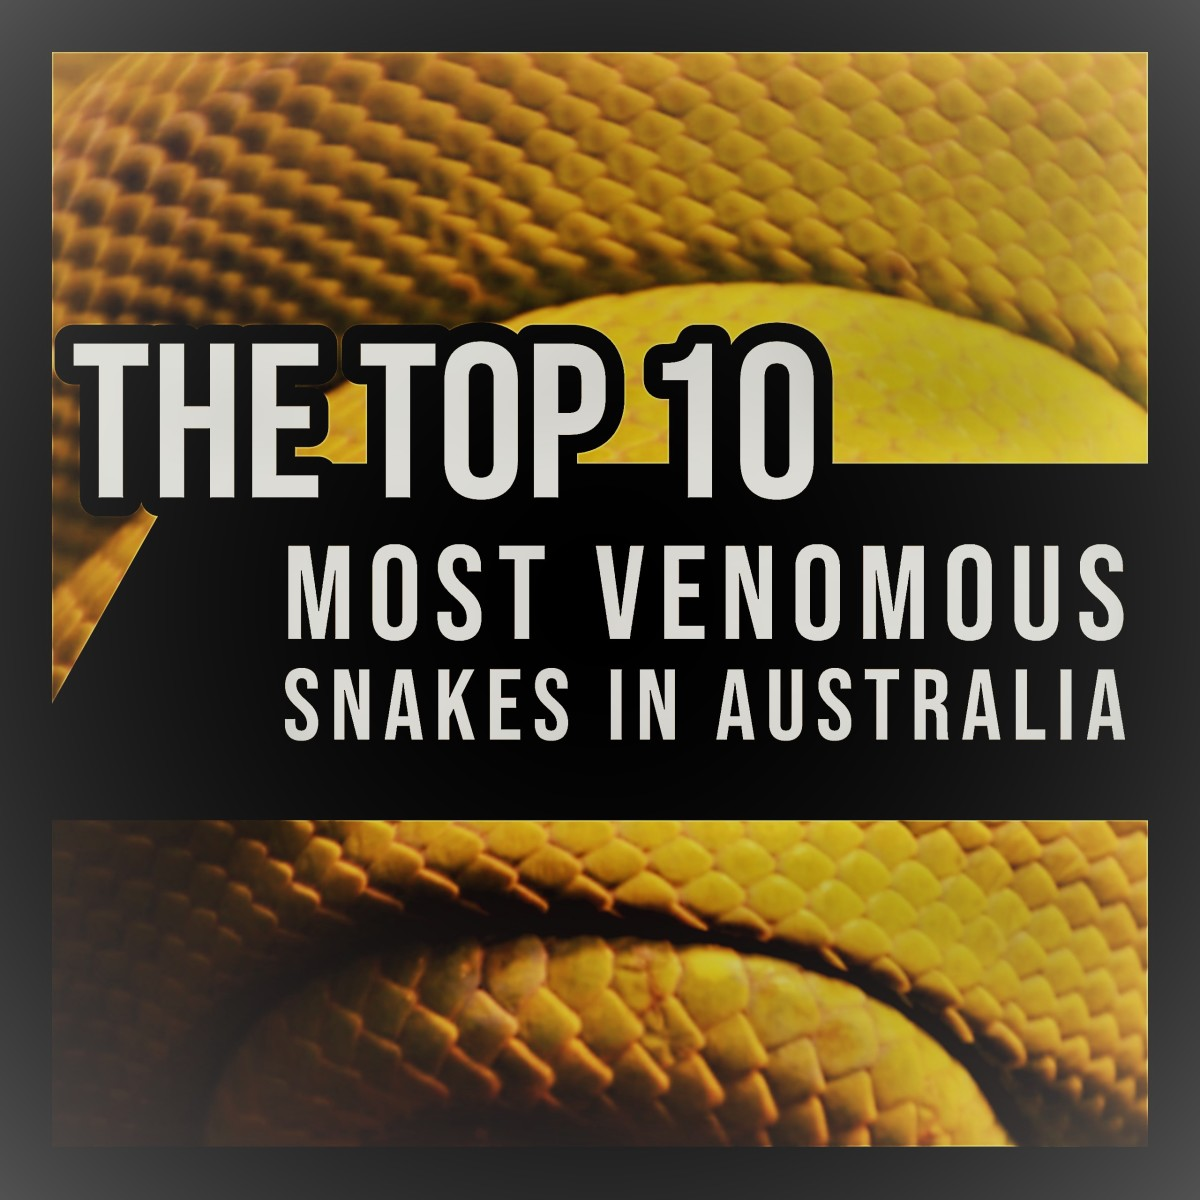 The Top 10 Most Venomous Snakes in Australia